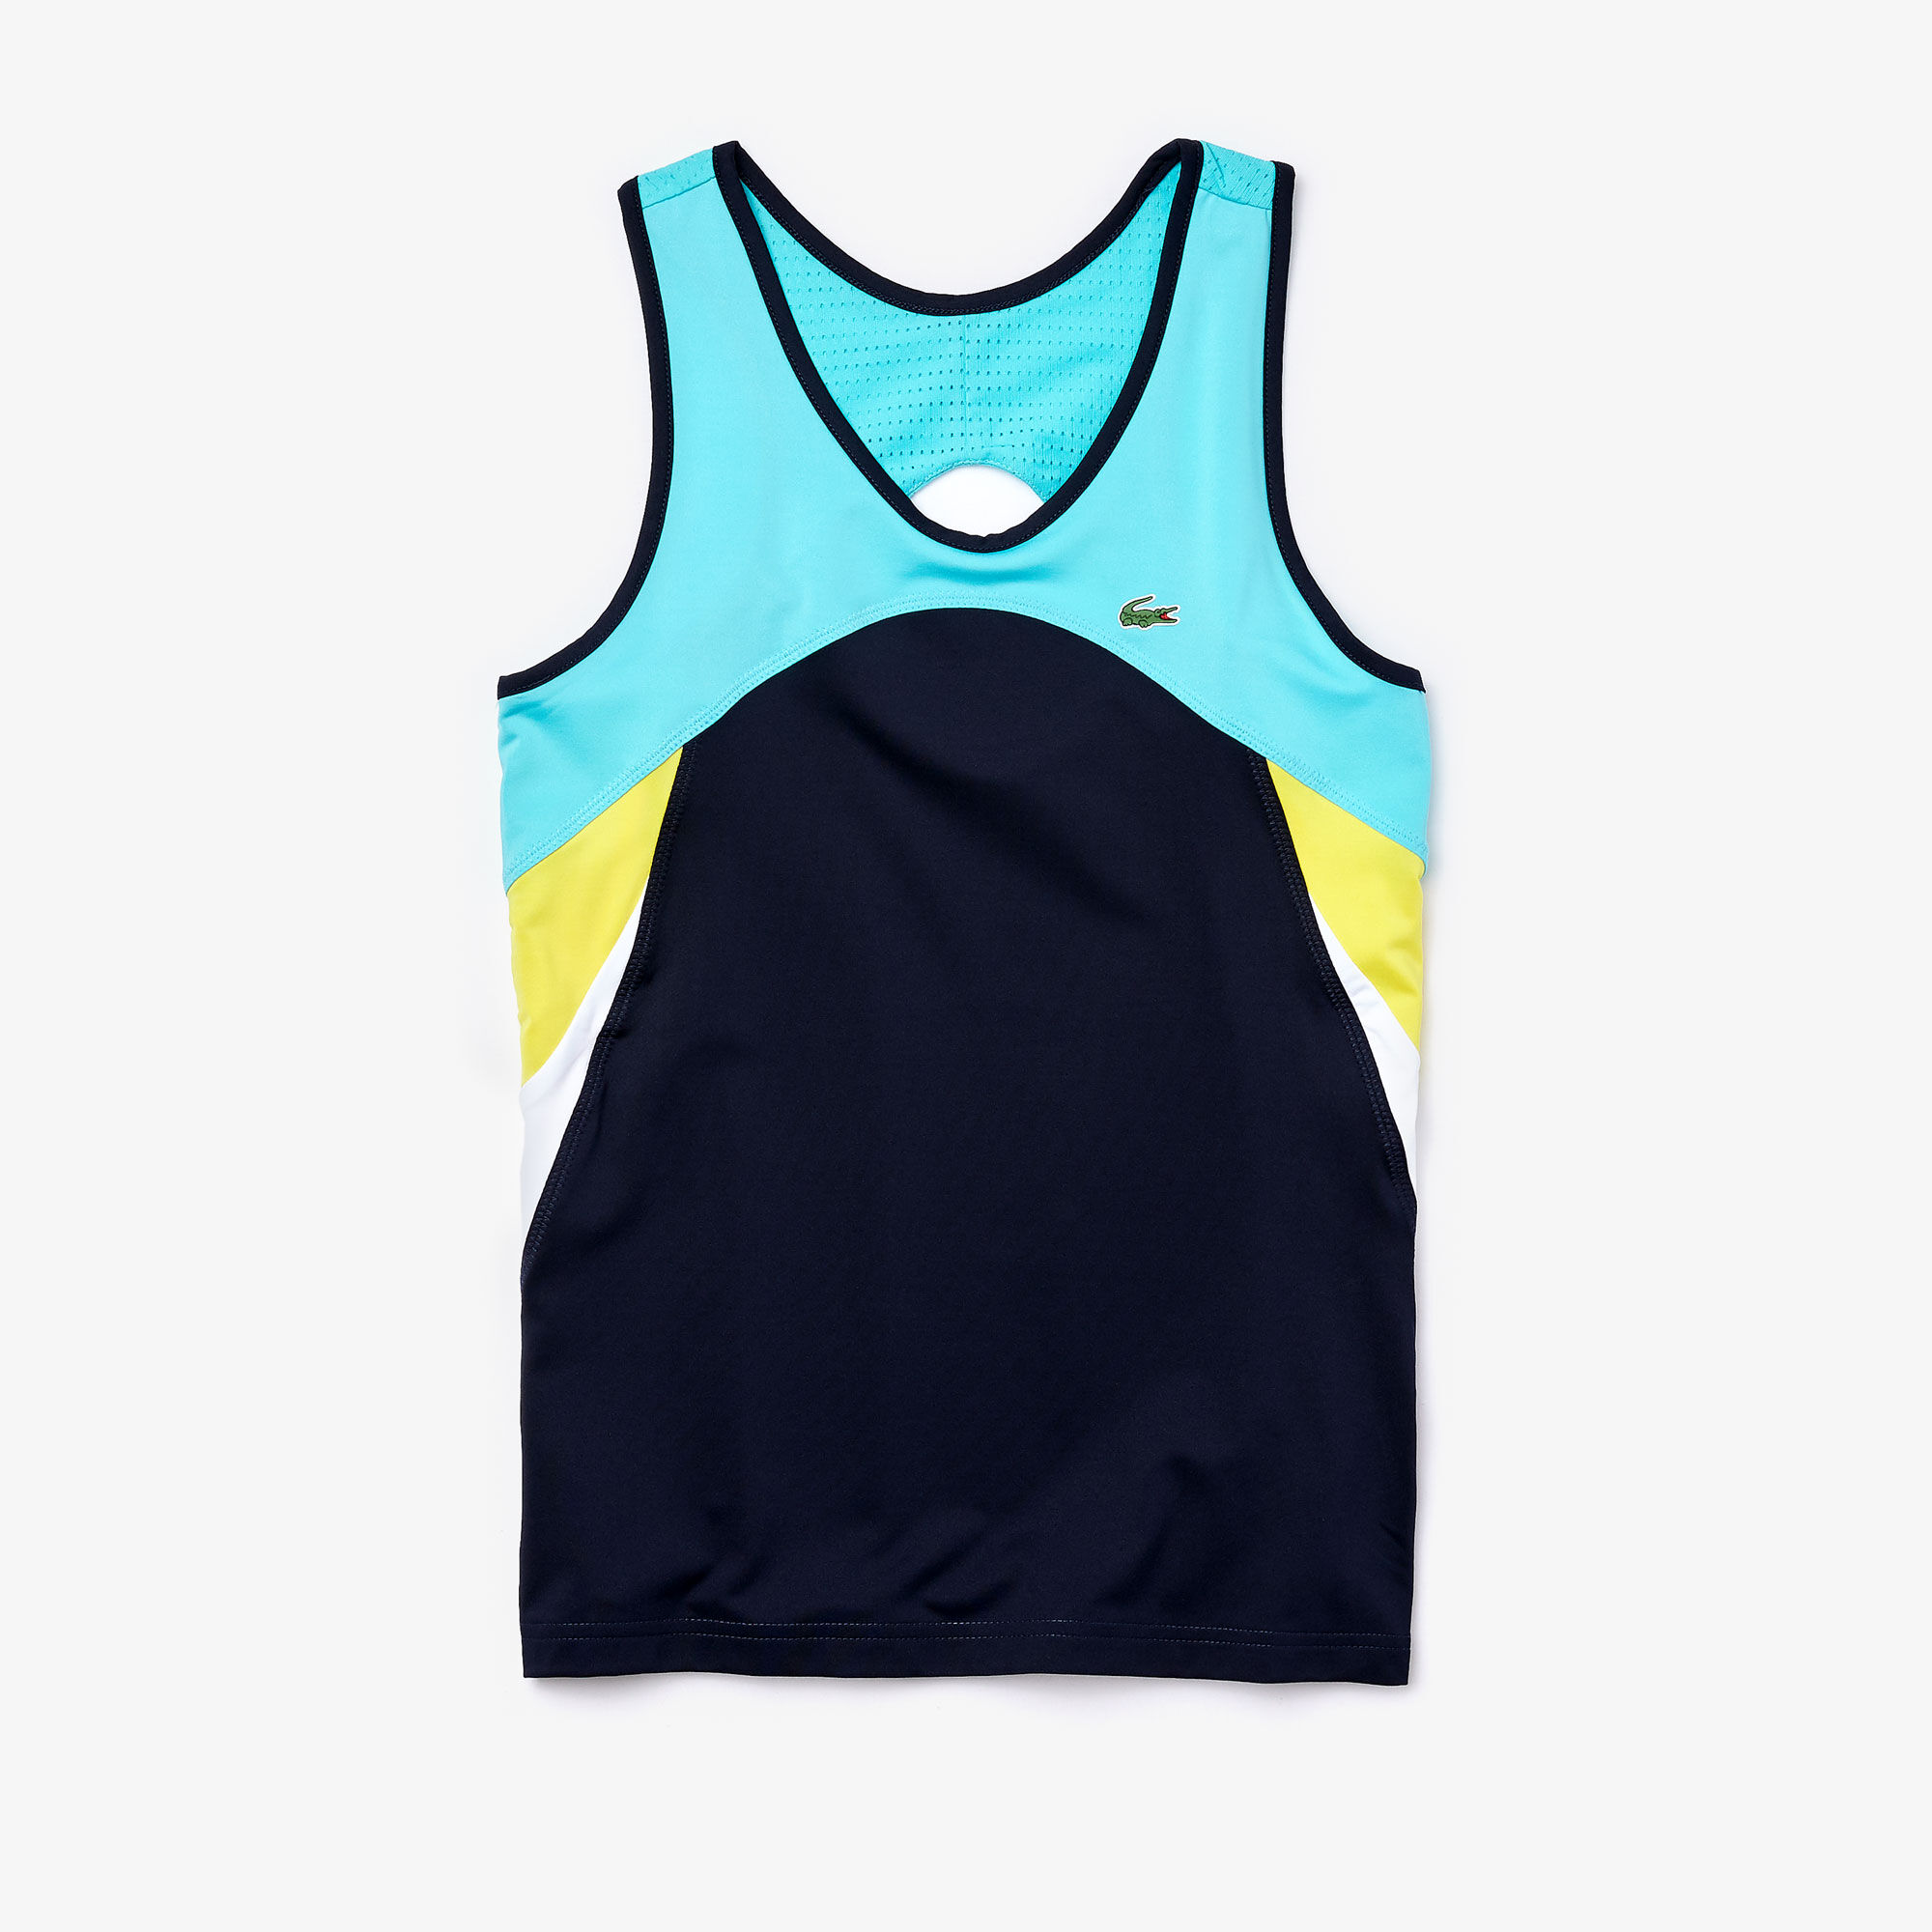 Women's Lacoste SPORT Breathable Stretch Tennis Tank Top